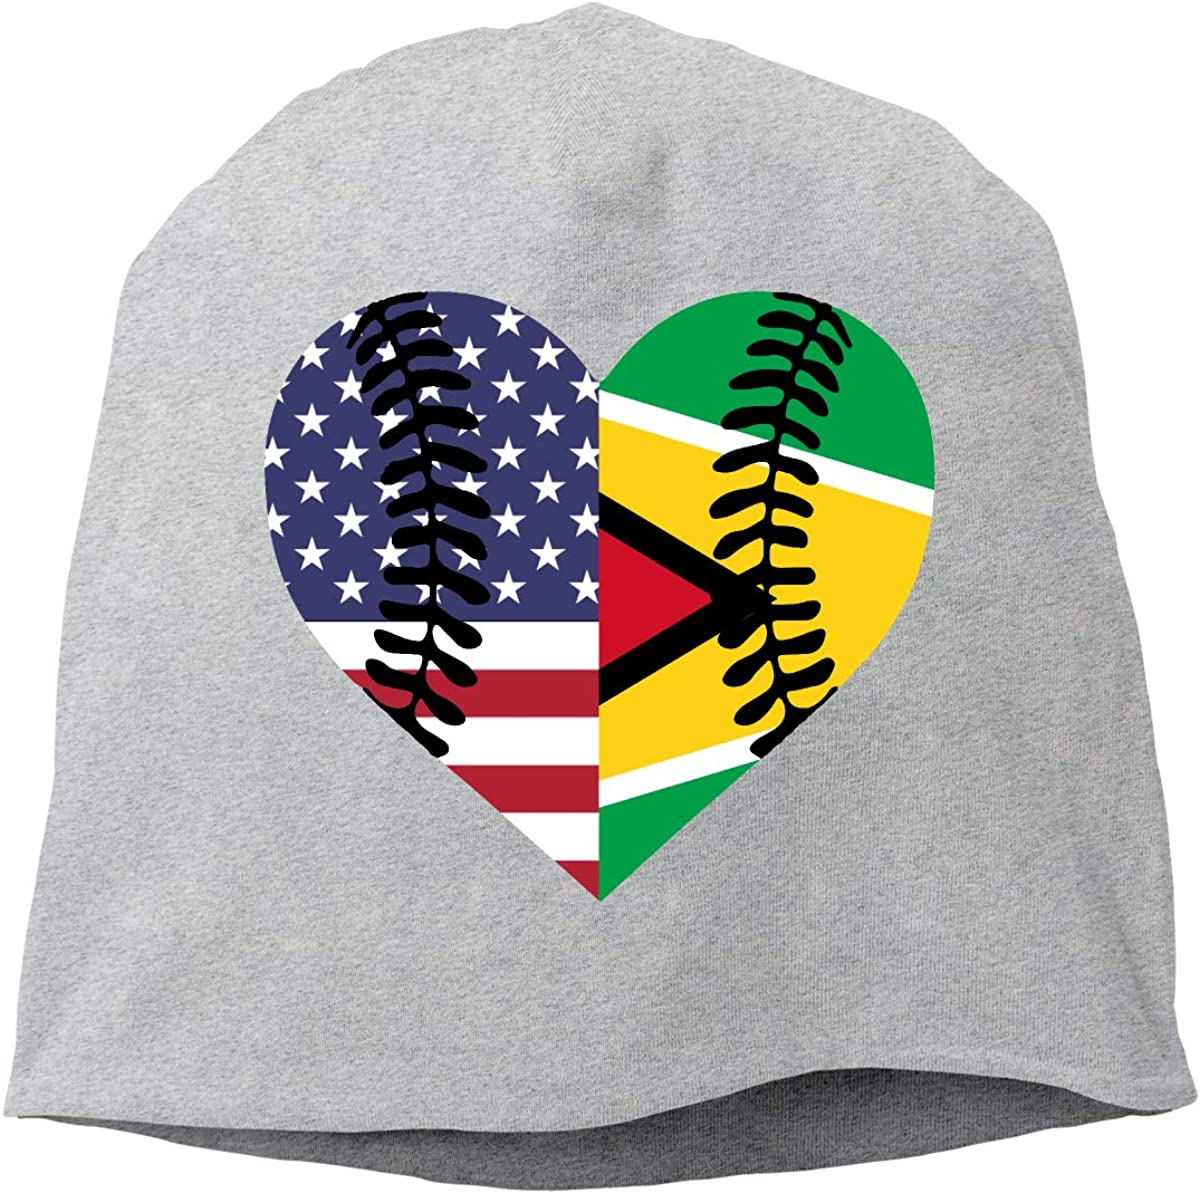 TLPM9LKMBM Guyana USA Flag Half Baseball Beanie Skull Cap for Women and Men Winter Warm Daily Hat